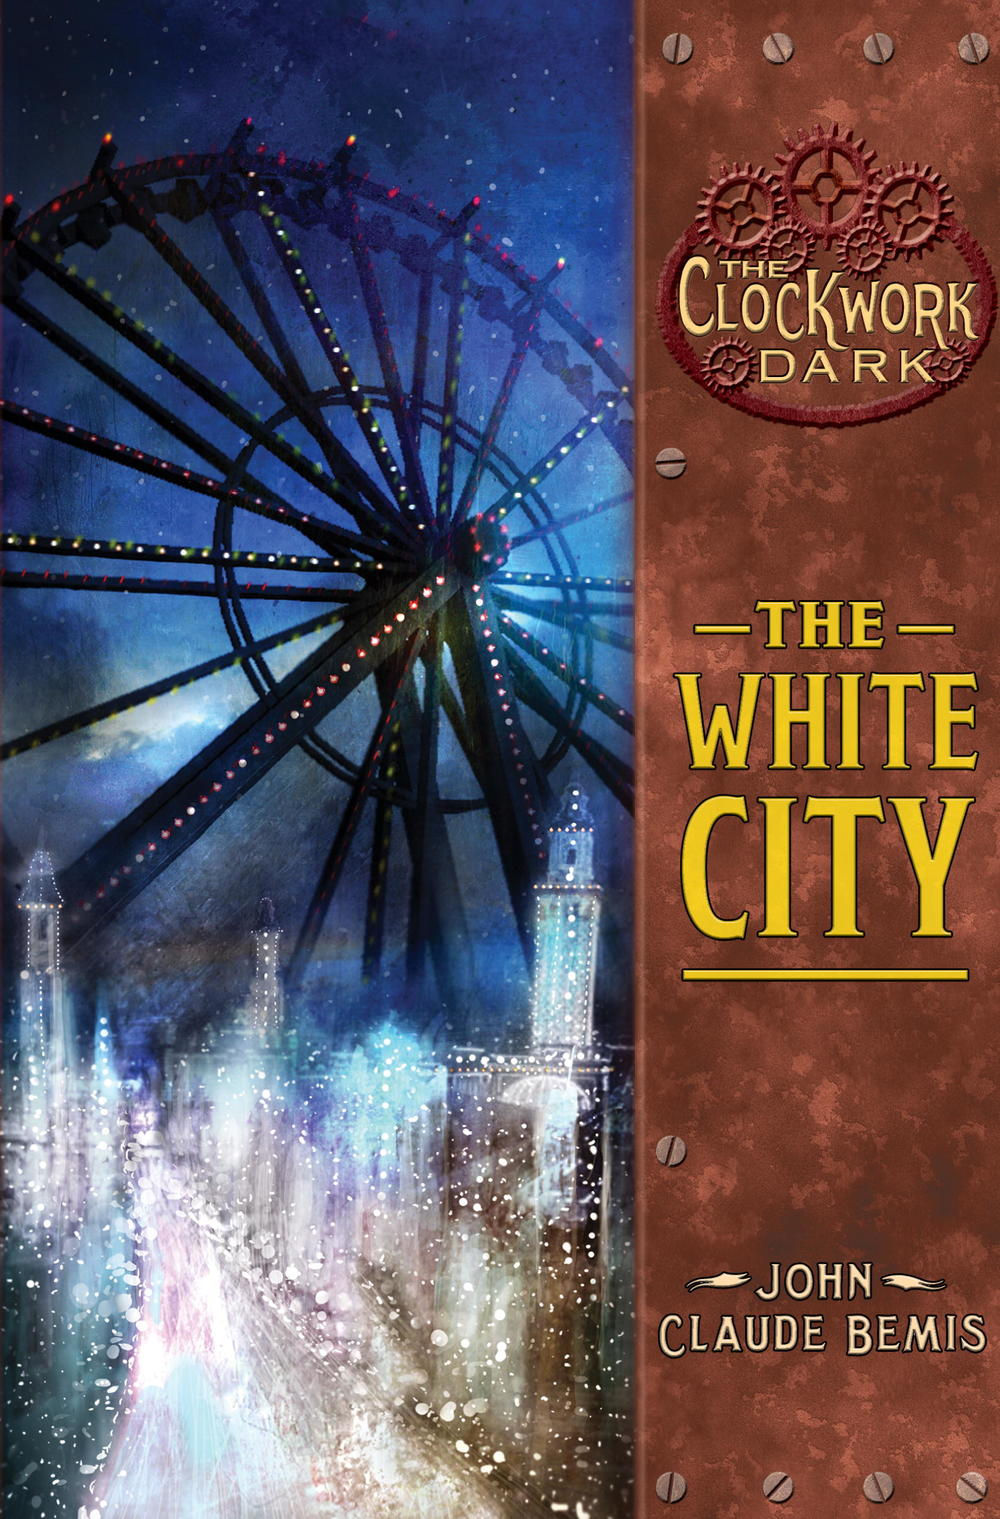 Book Three - The White City